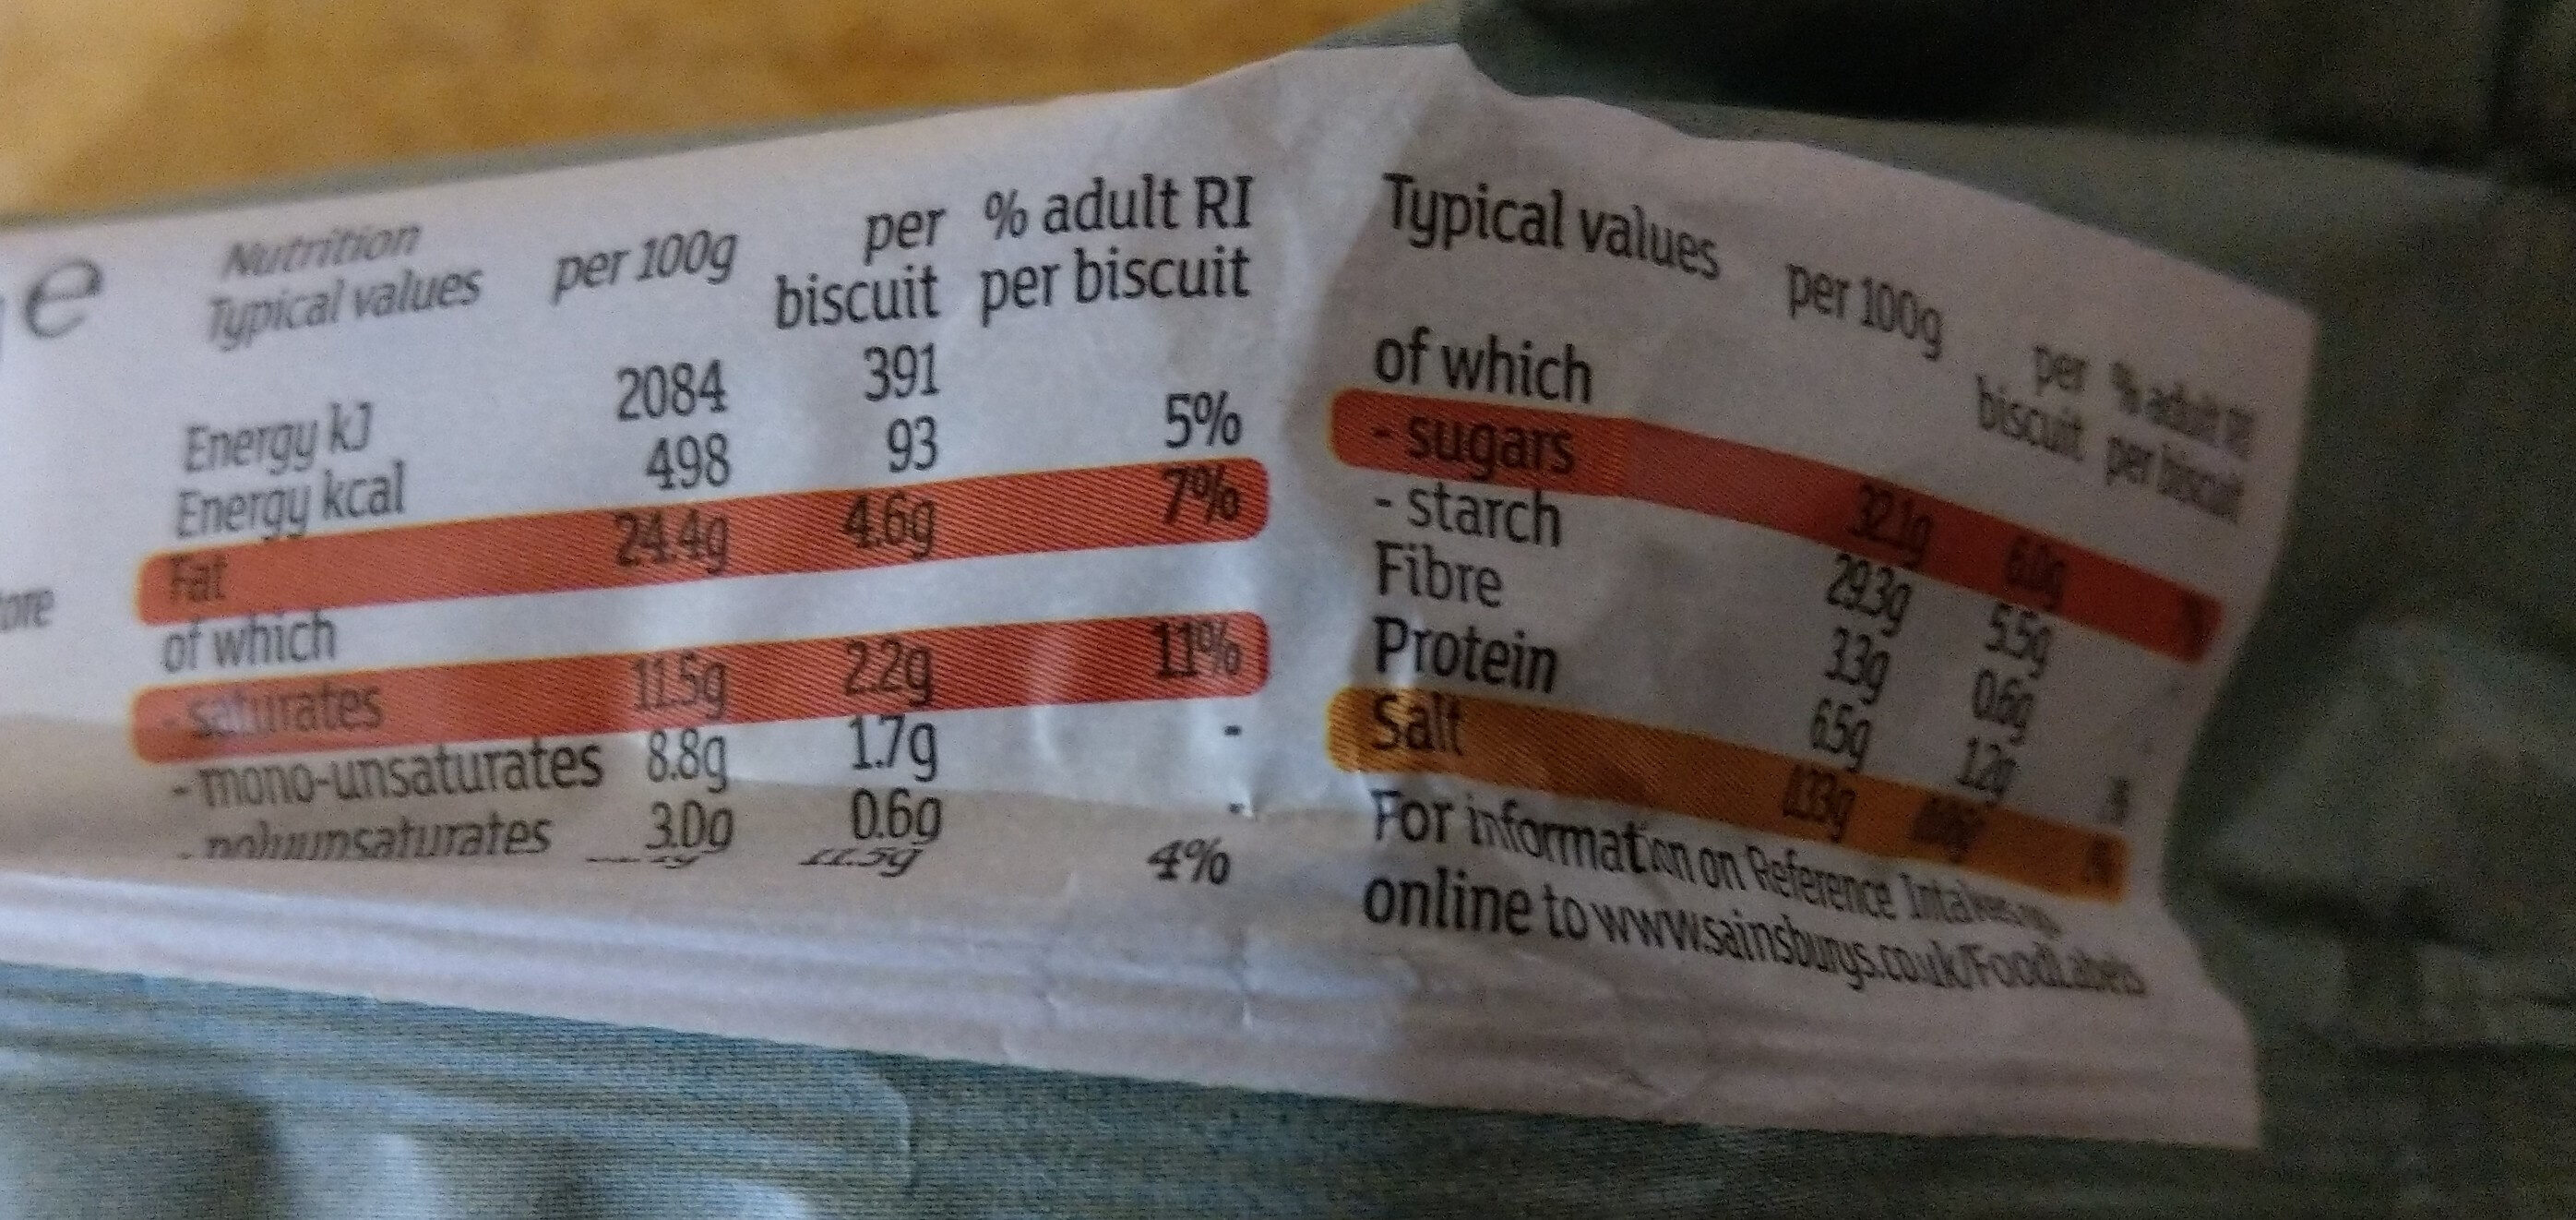 Chocolate Chip Cookies - Nutrition facts